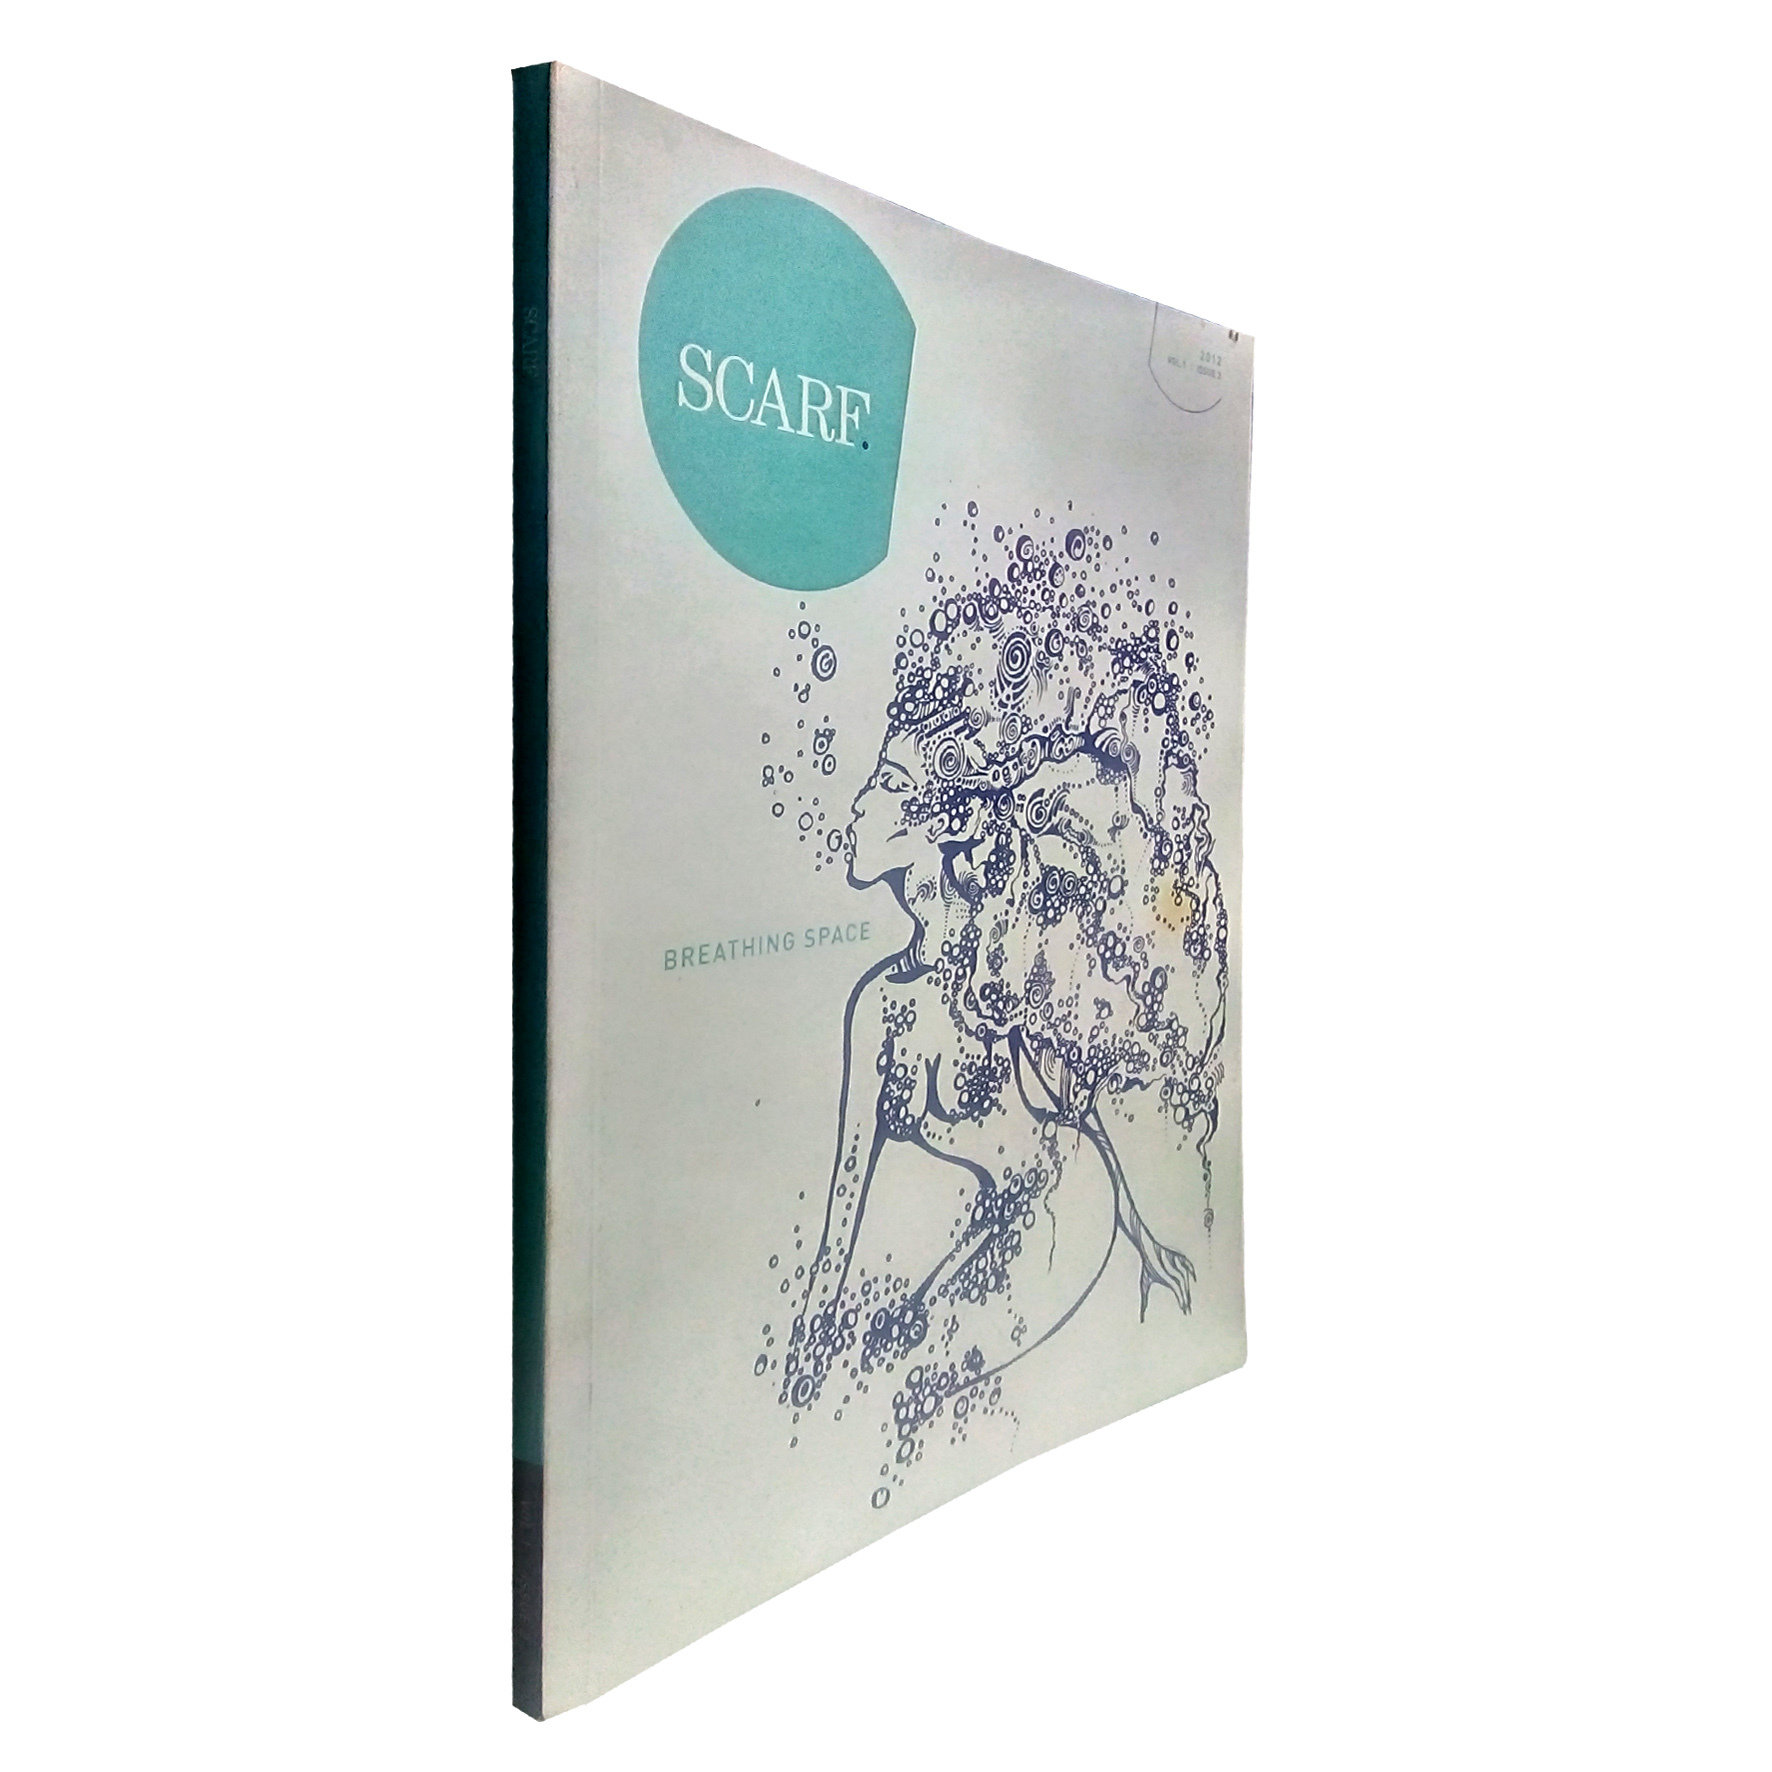 SCARF: Breathing Space - Vol 1, Issue 3 (Numbi Publications, 2012) CIR16